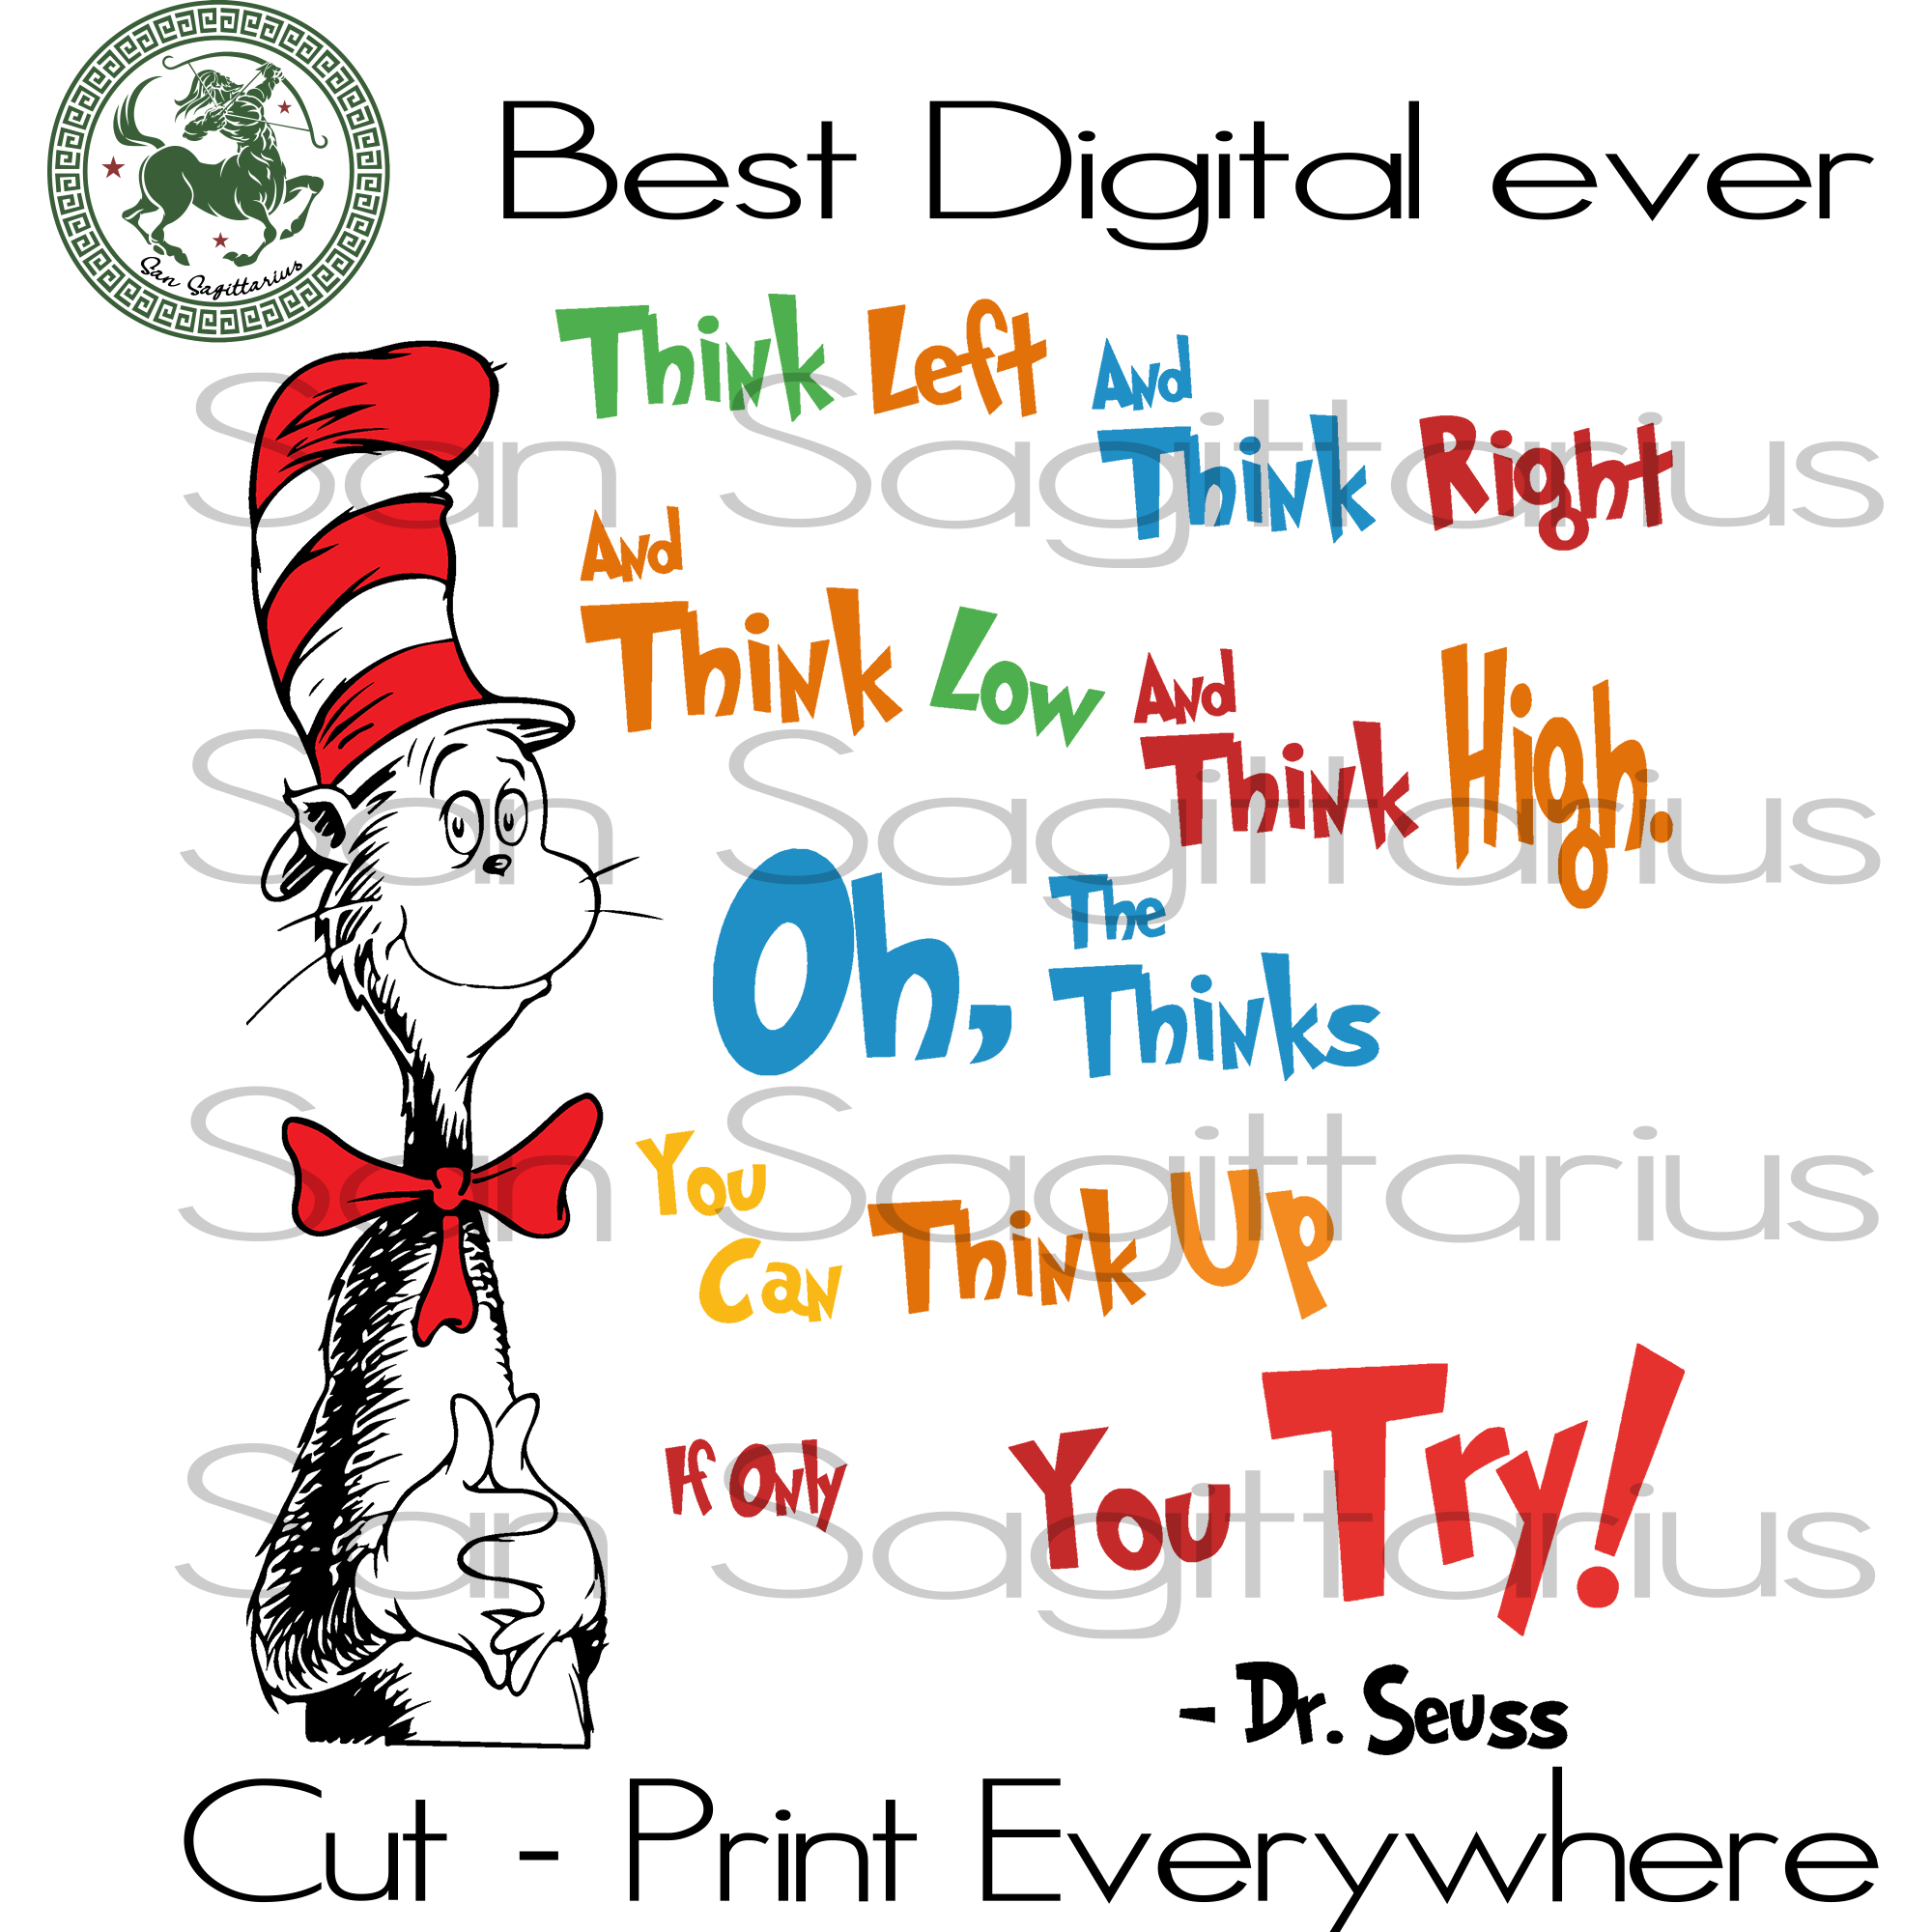 Dr Seuss Svg, Dr Seuss Quote, Dr Seuss  Saying, Dr Seuss Svg, Dr Seuss Gift, Dr Seuss Birthday Party Svg Files For Cricut Silhouette Instant Download | San Sagittarius